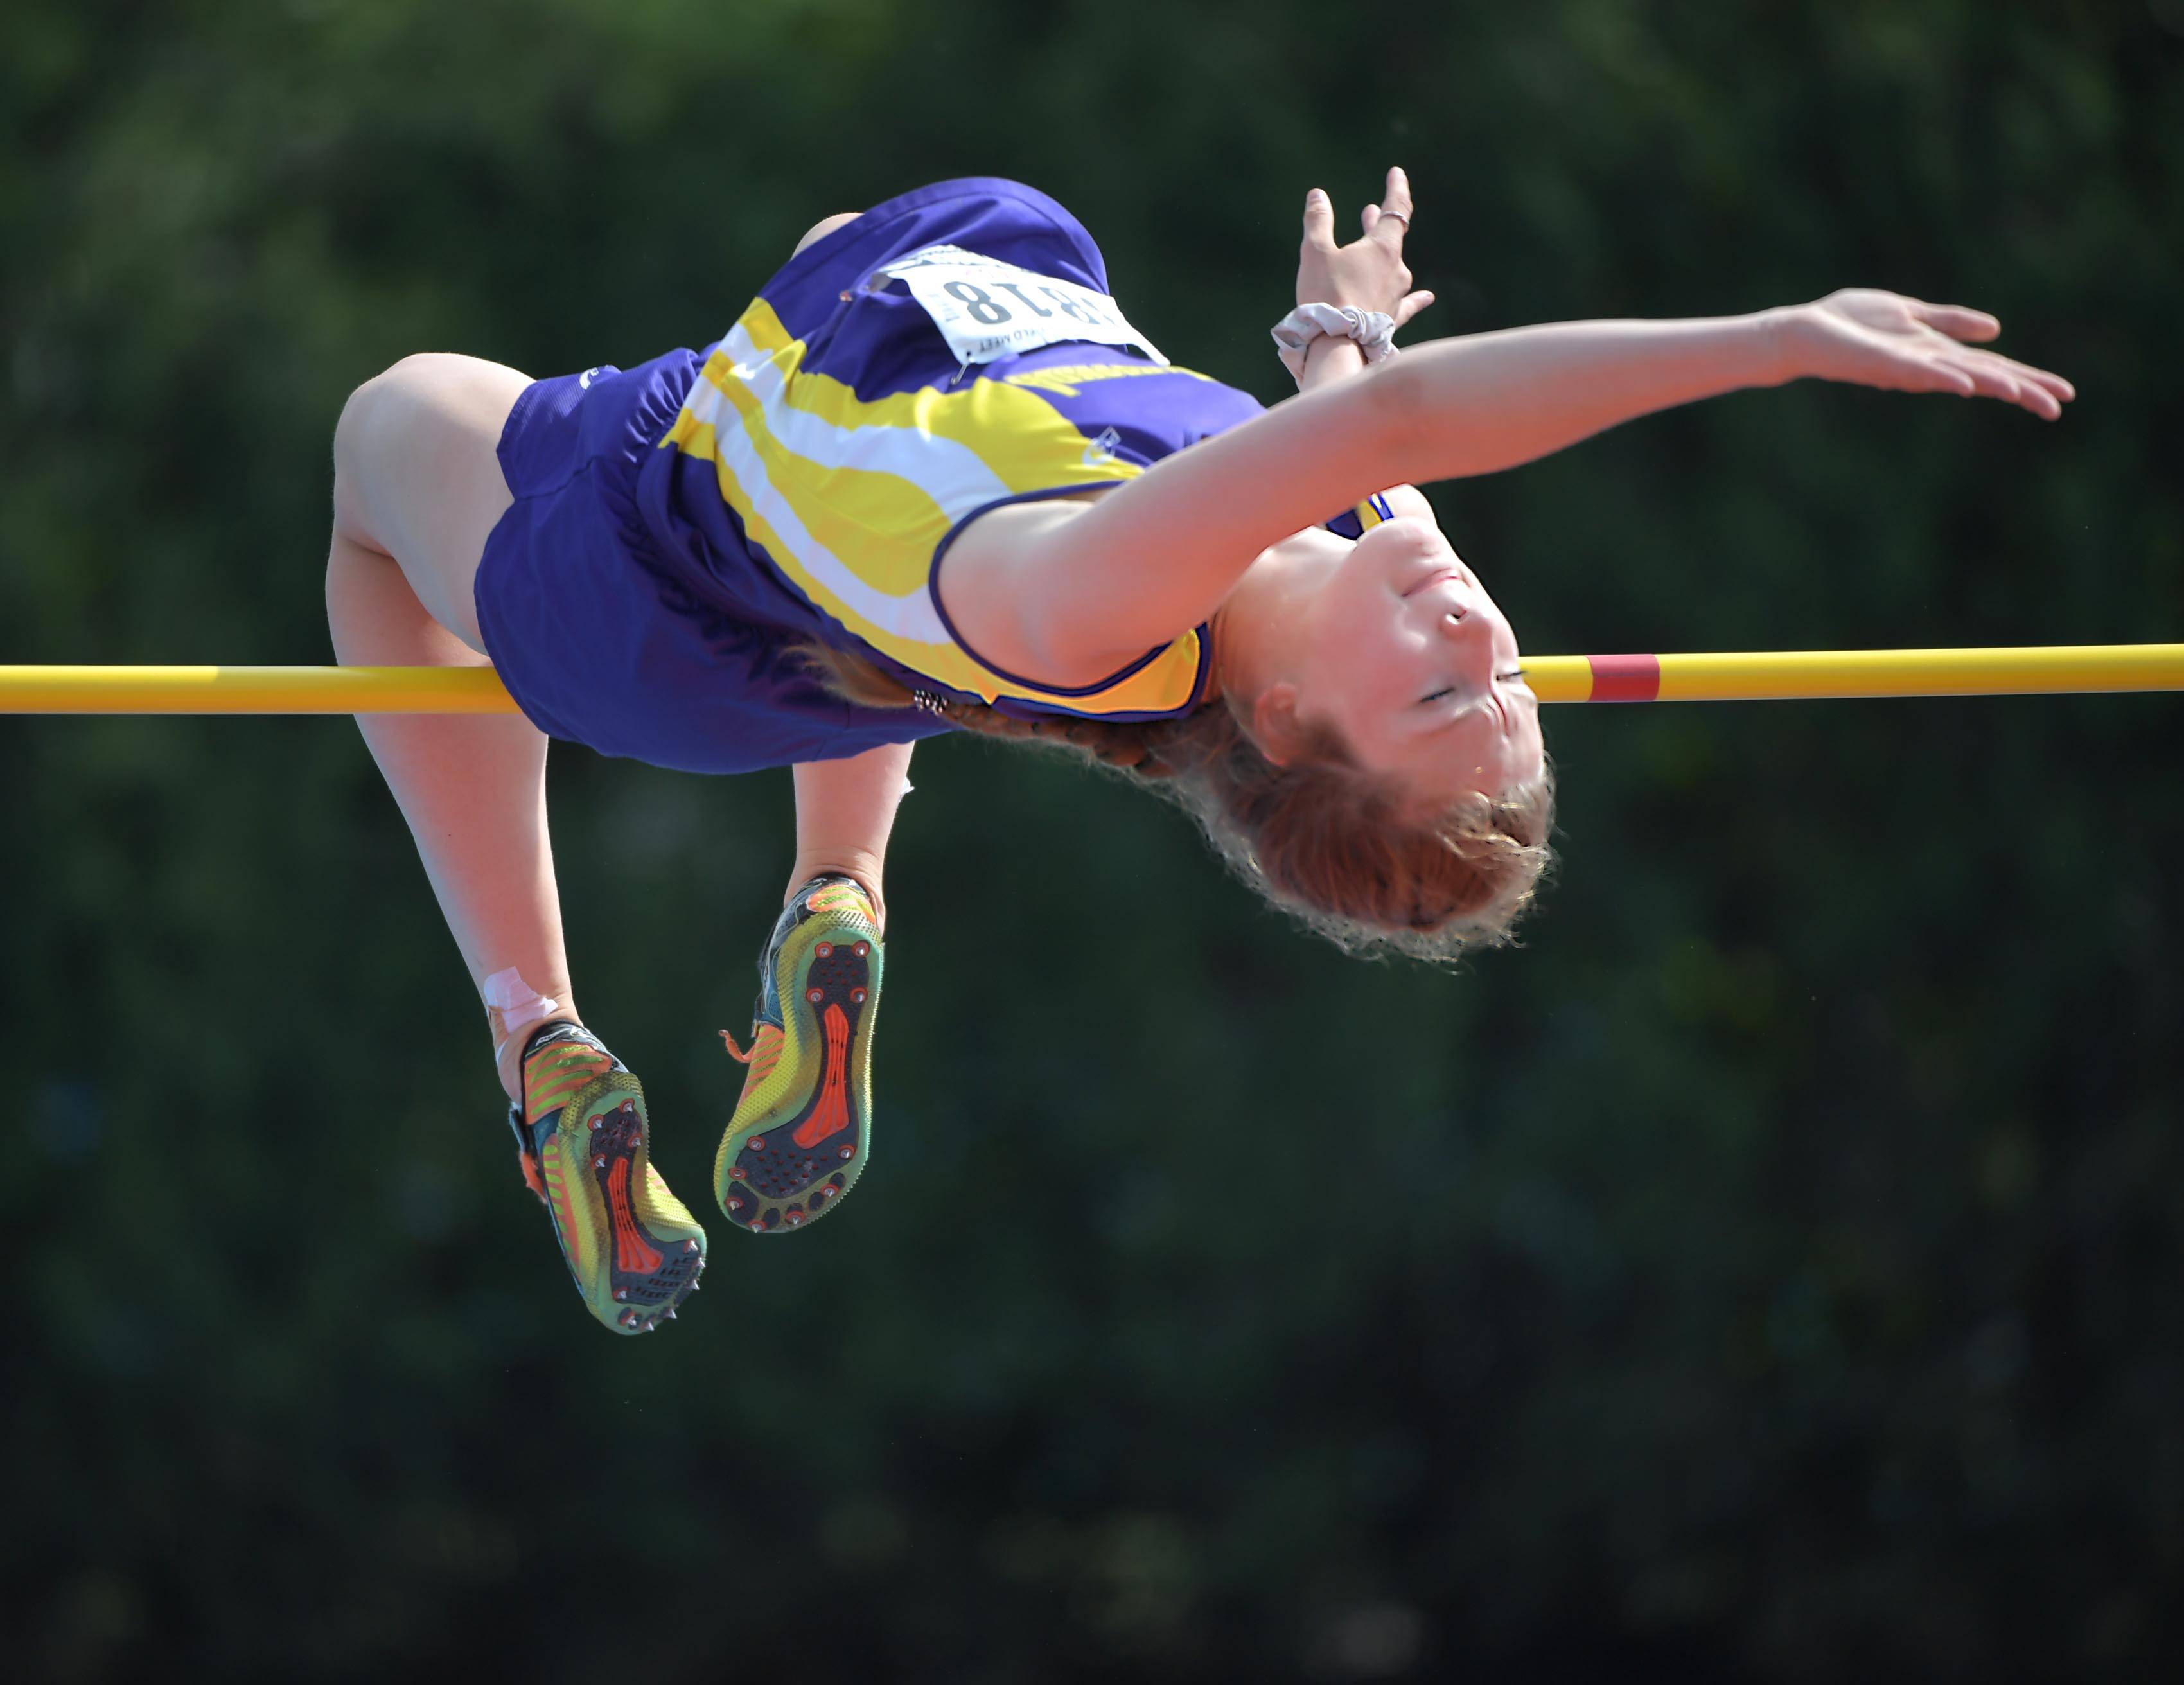 Wauconda's Grace Daun clears the bar to win a state championship in the Class 3A high jump of the girls track and field state finals on Saturday at Eastern Illinois University in Charleston.